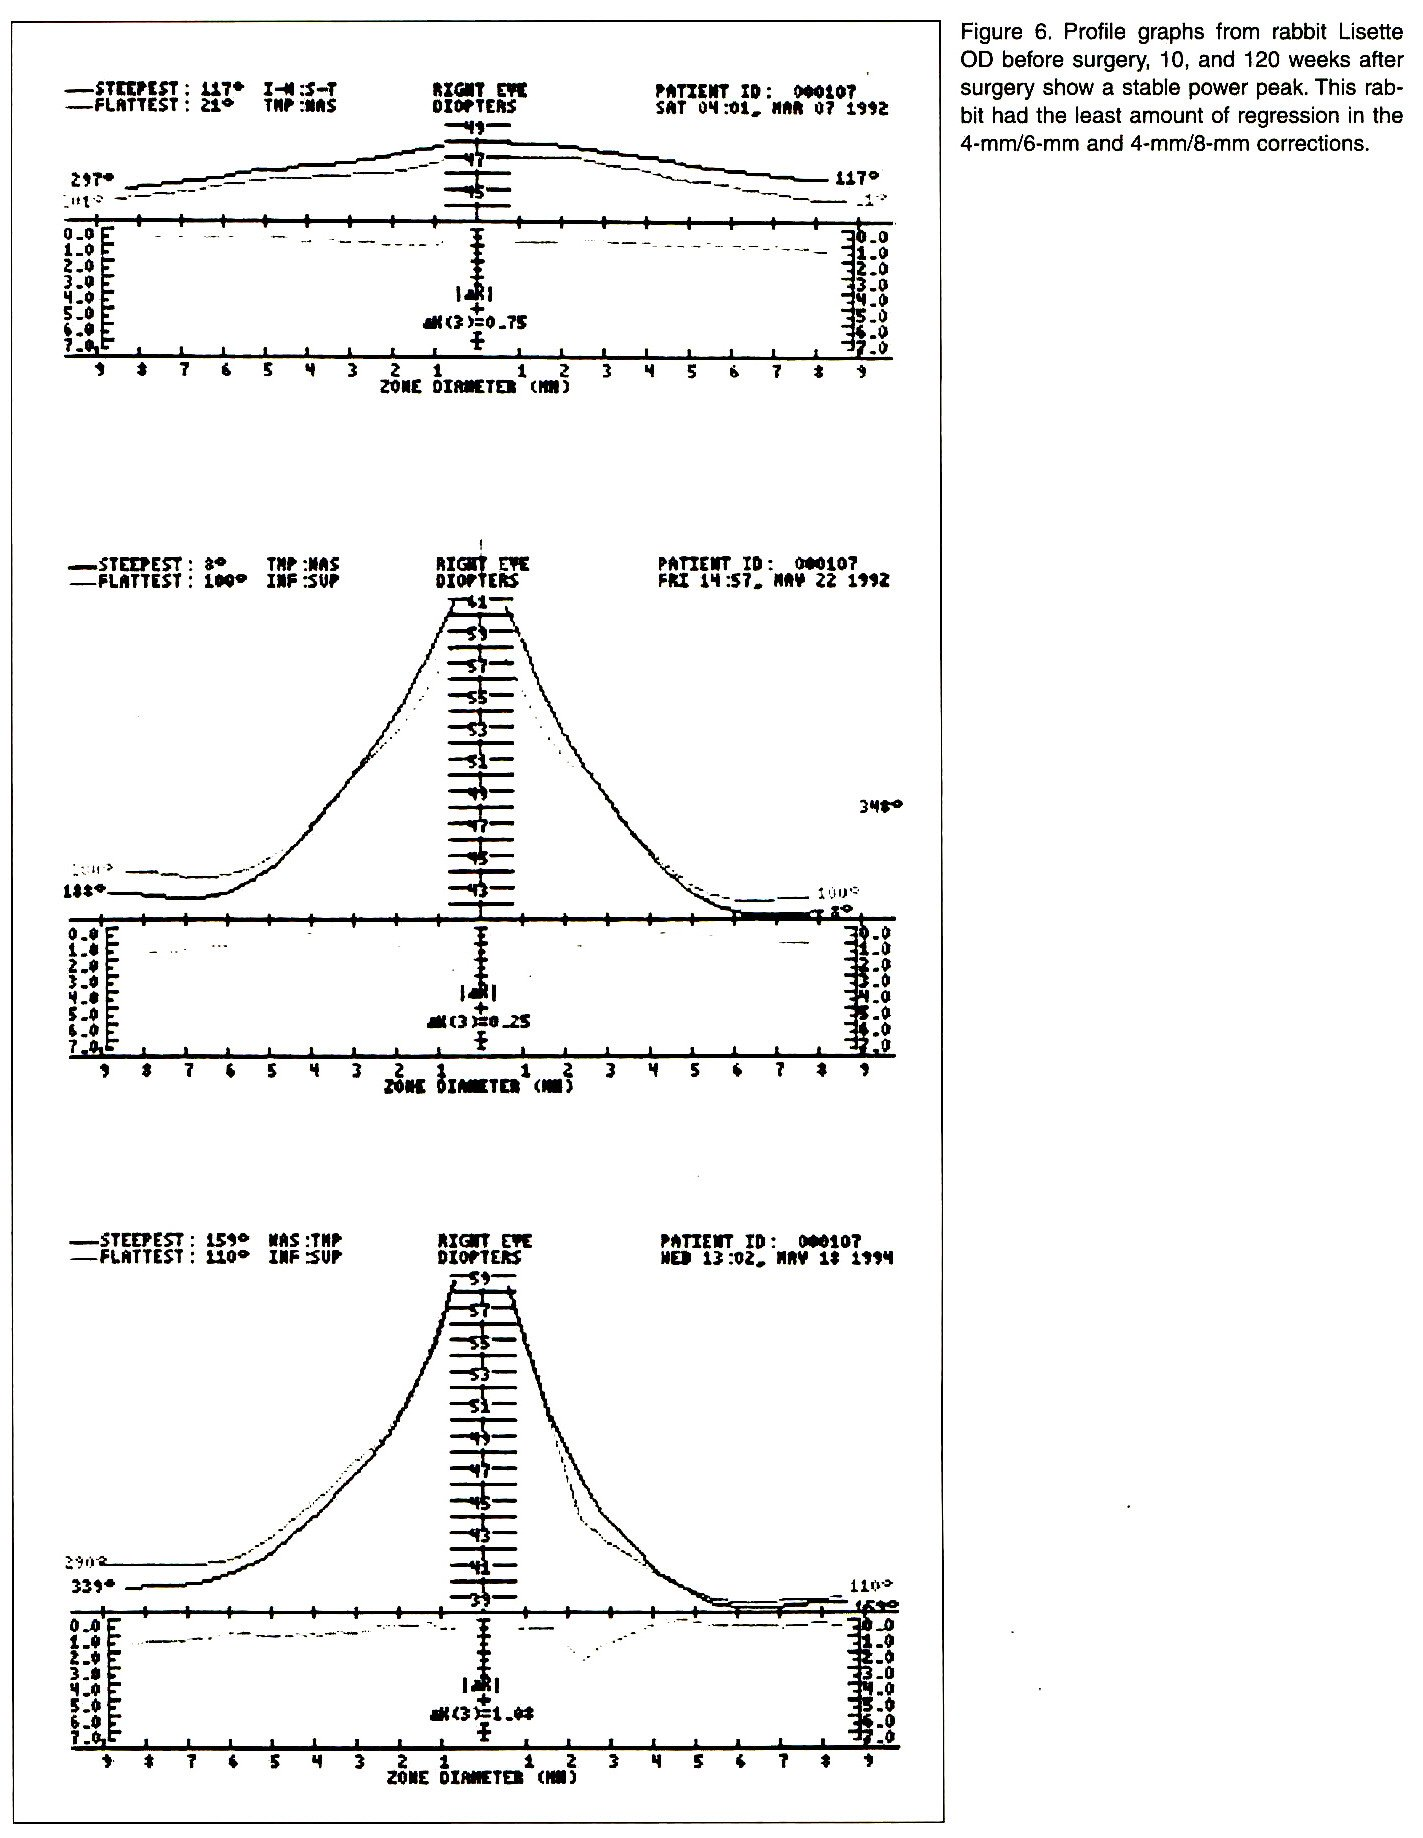 Figure 6. Profile graphs from rabbit Lisette OD before surgery, 10, and 120 weeks after surgery show a stable power peak. This rabbit had the least amount of regression in the 4-mm/6-mm and 4-mm/8-mm corrections.